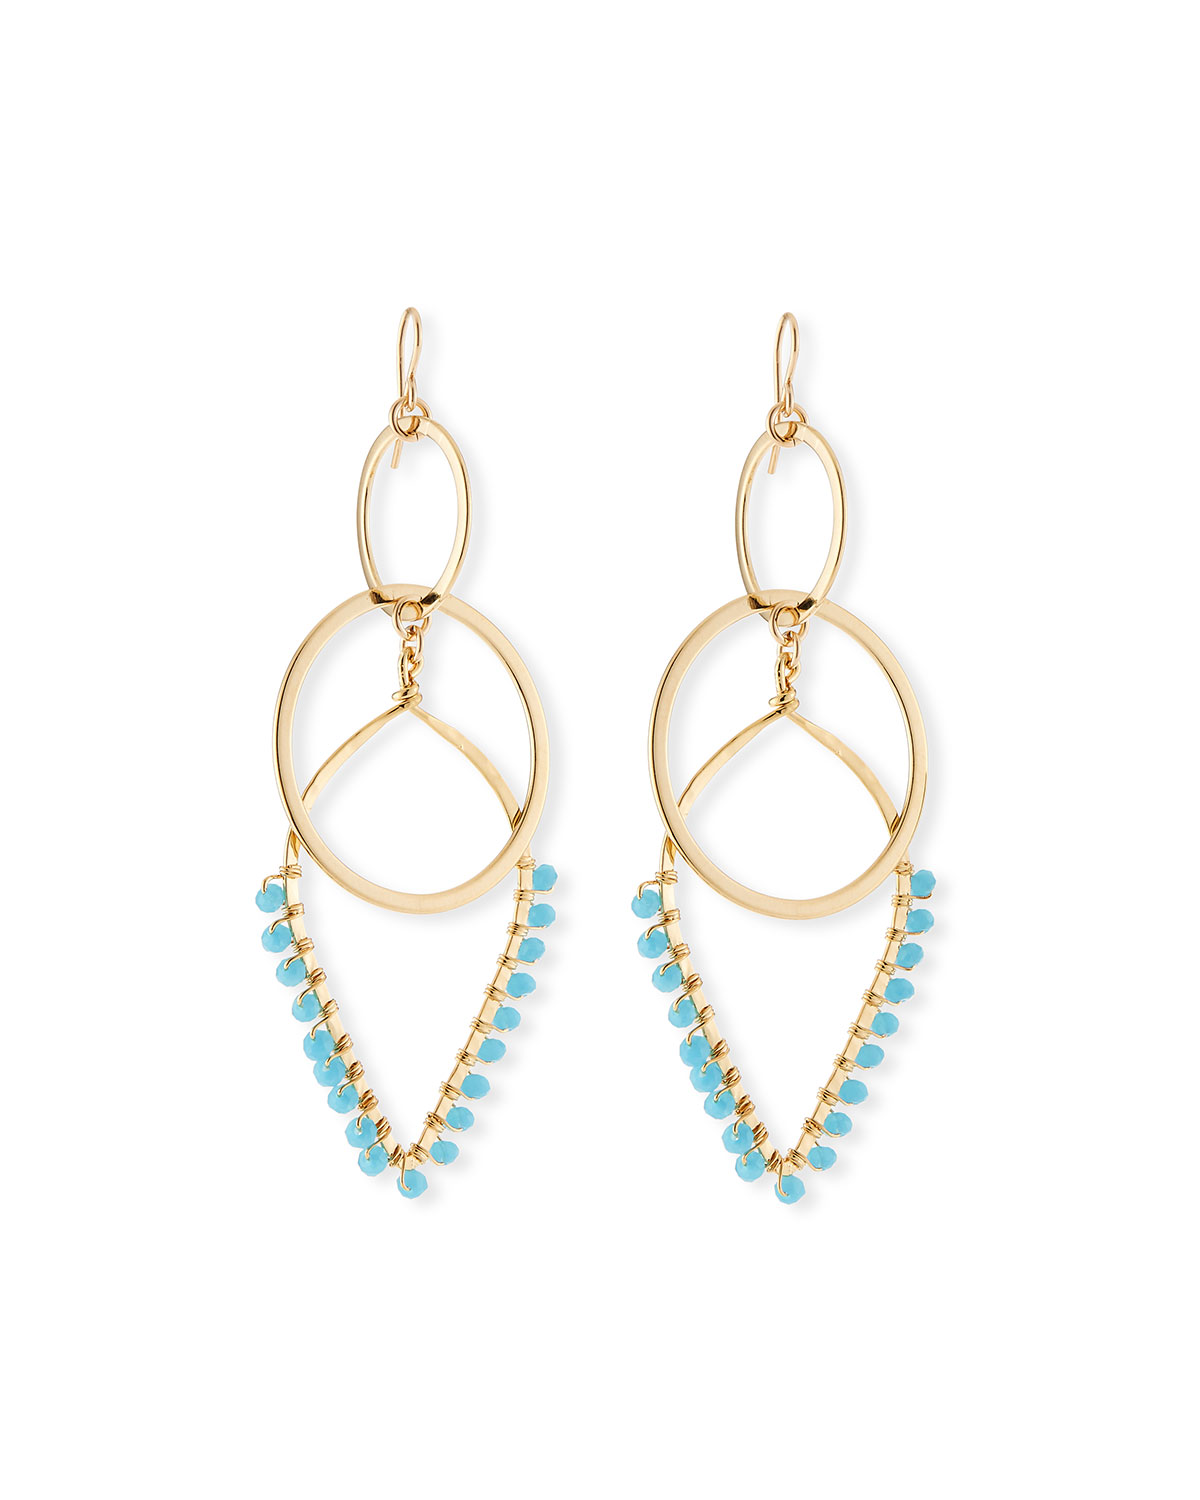 Devon Leigh Teardrop Double-Link Earrings ZKgQNUw